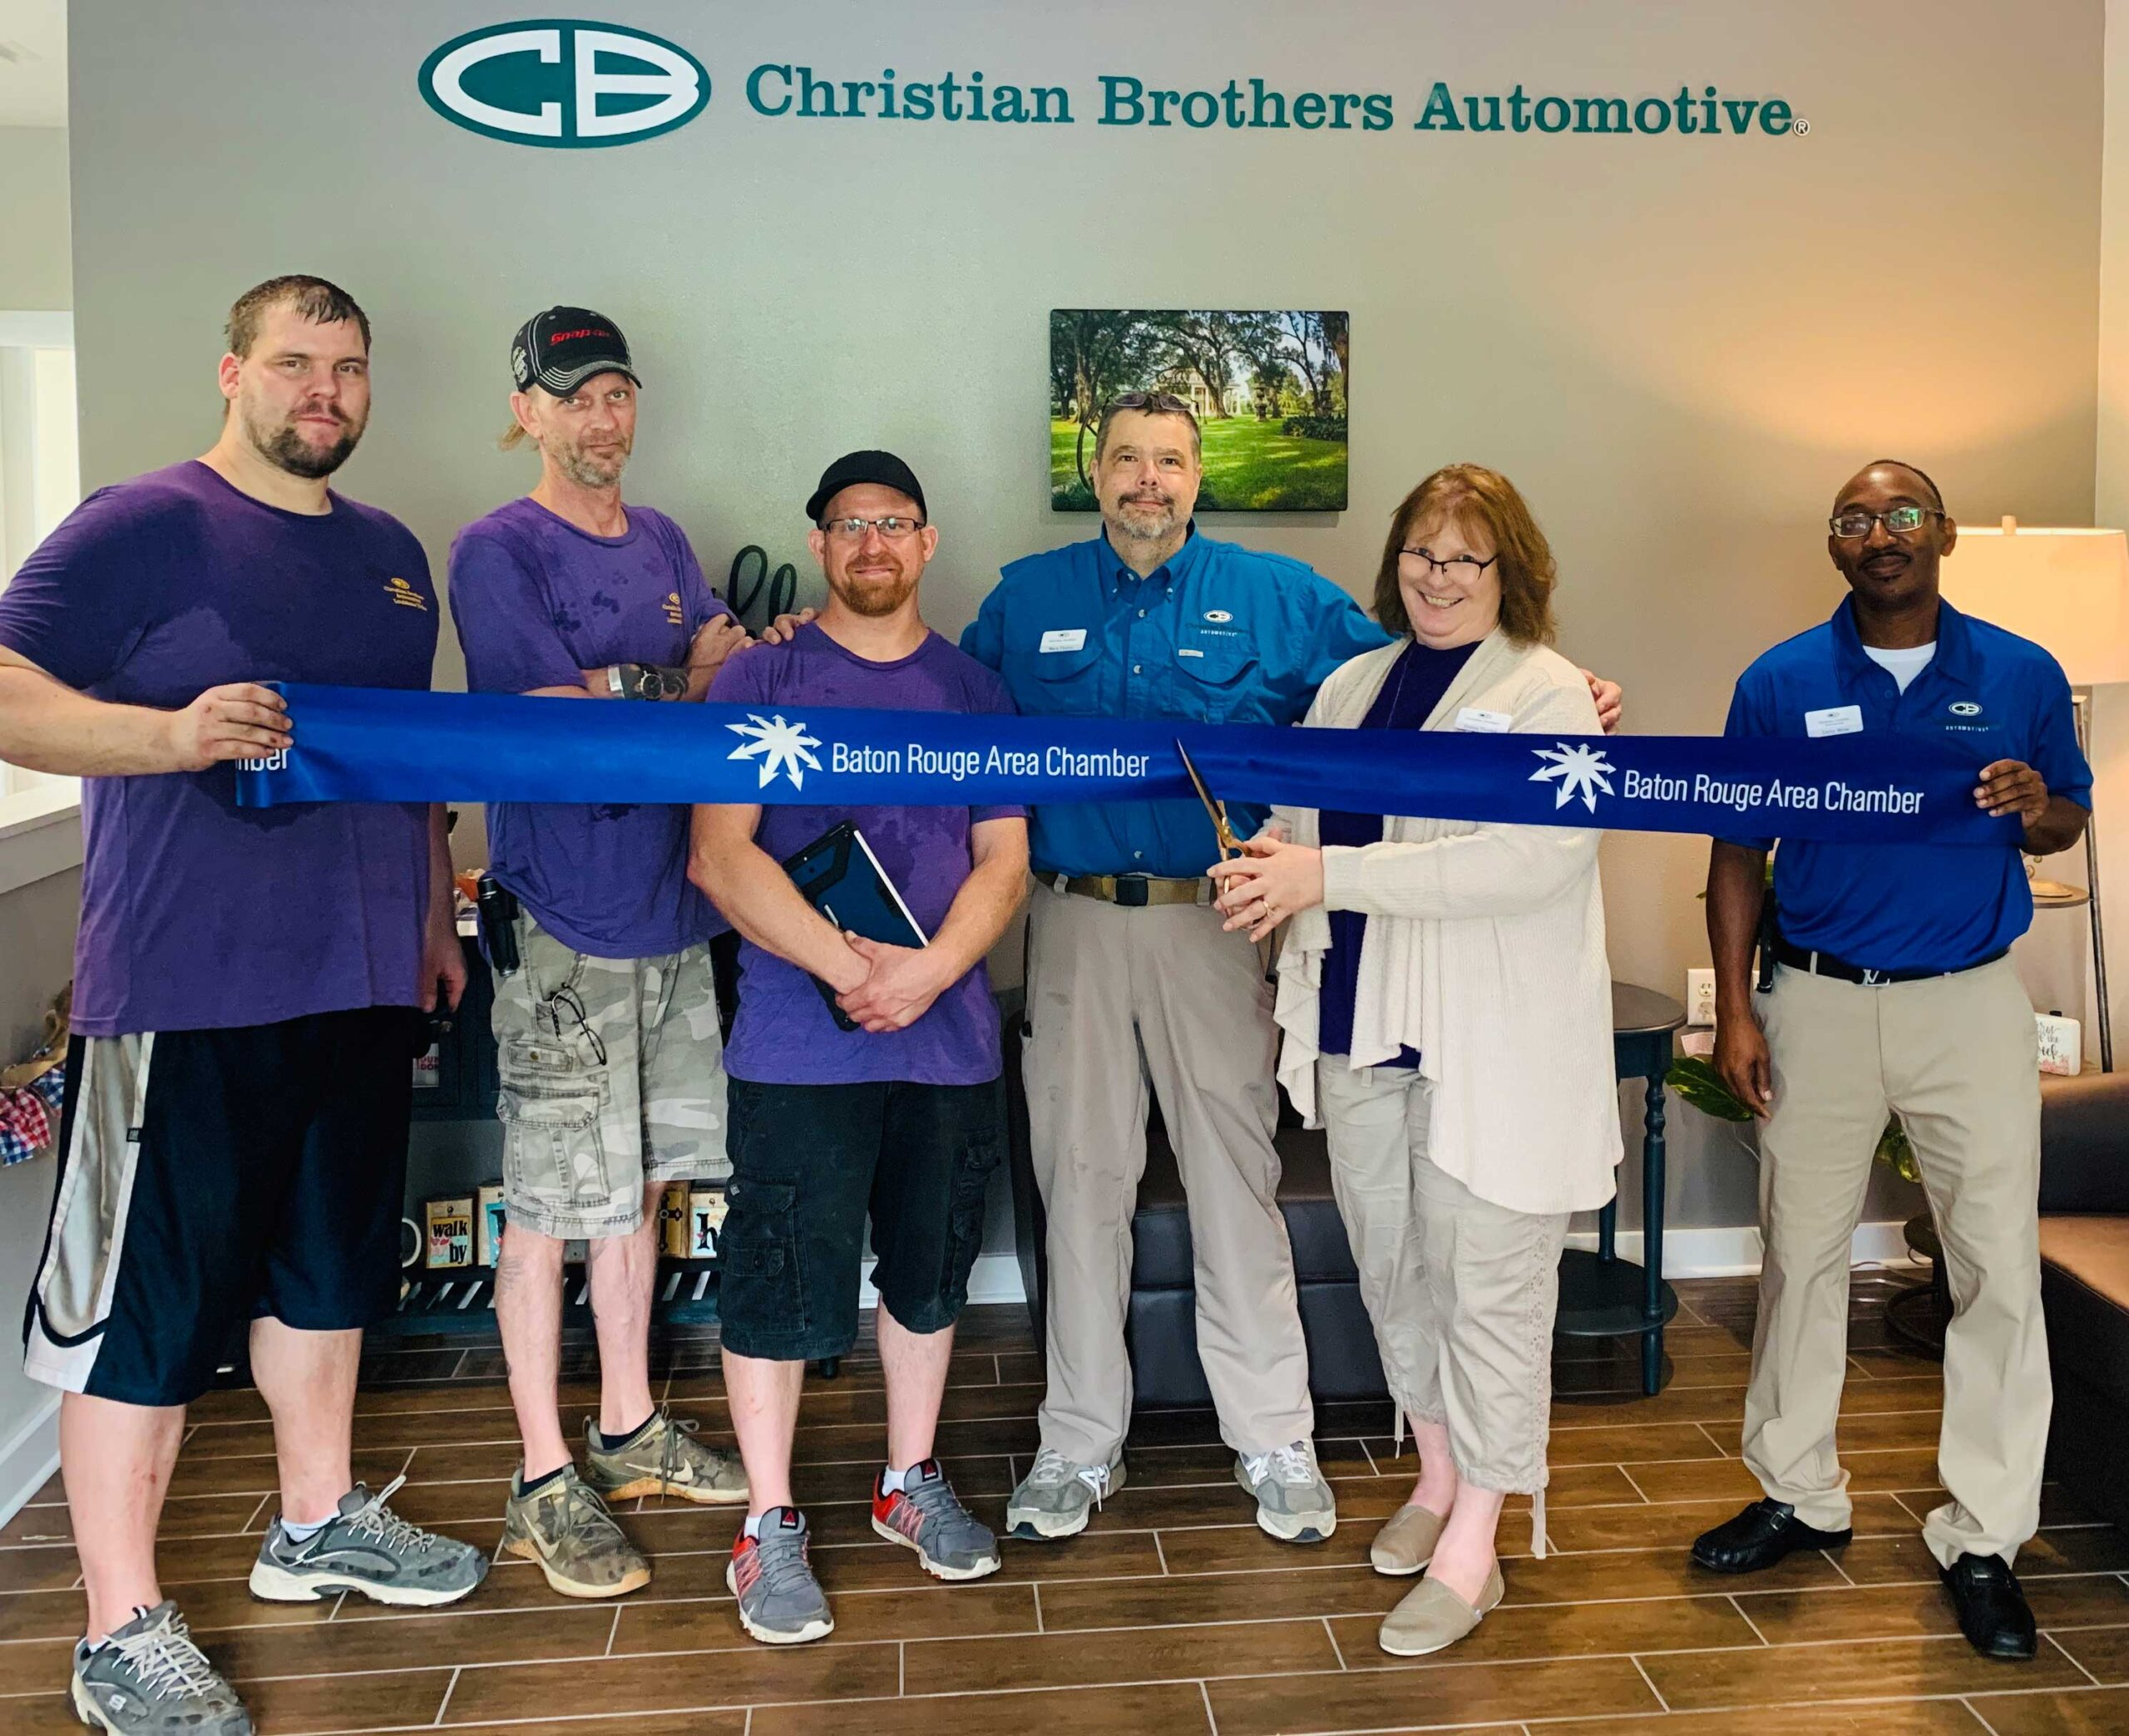 Christian Brothers Automotive<br/> June 30, 2020